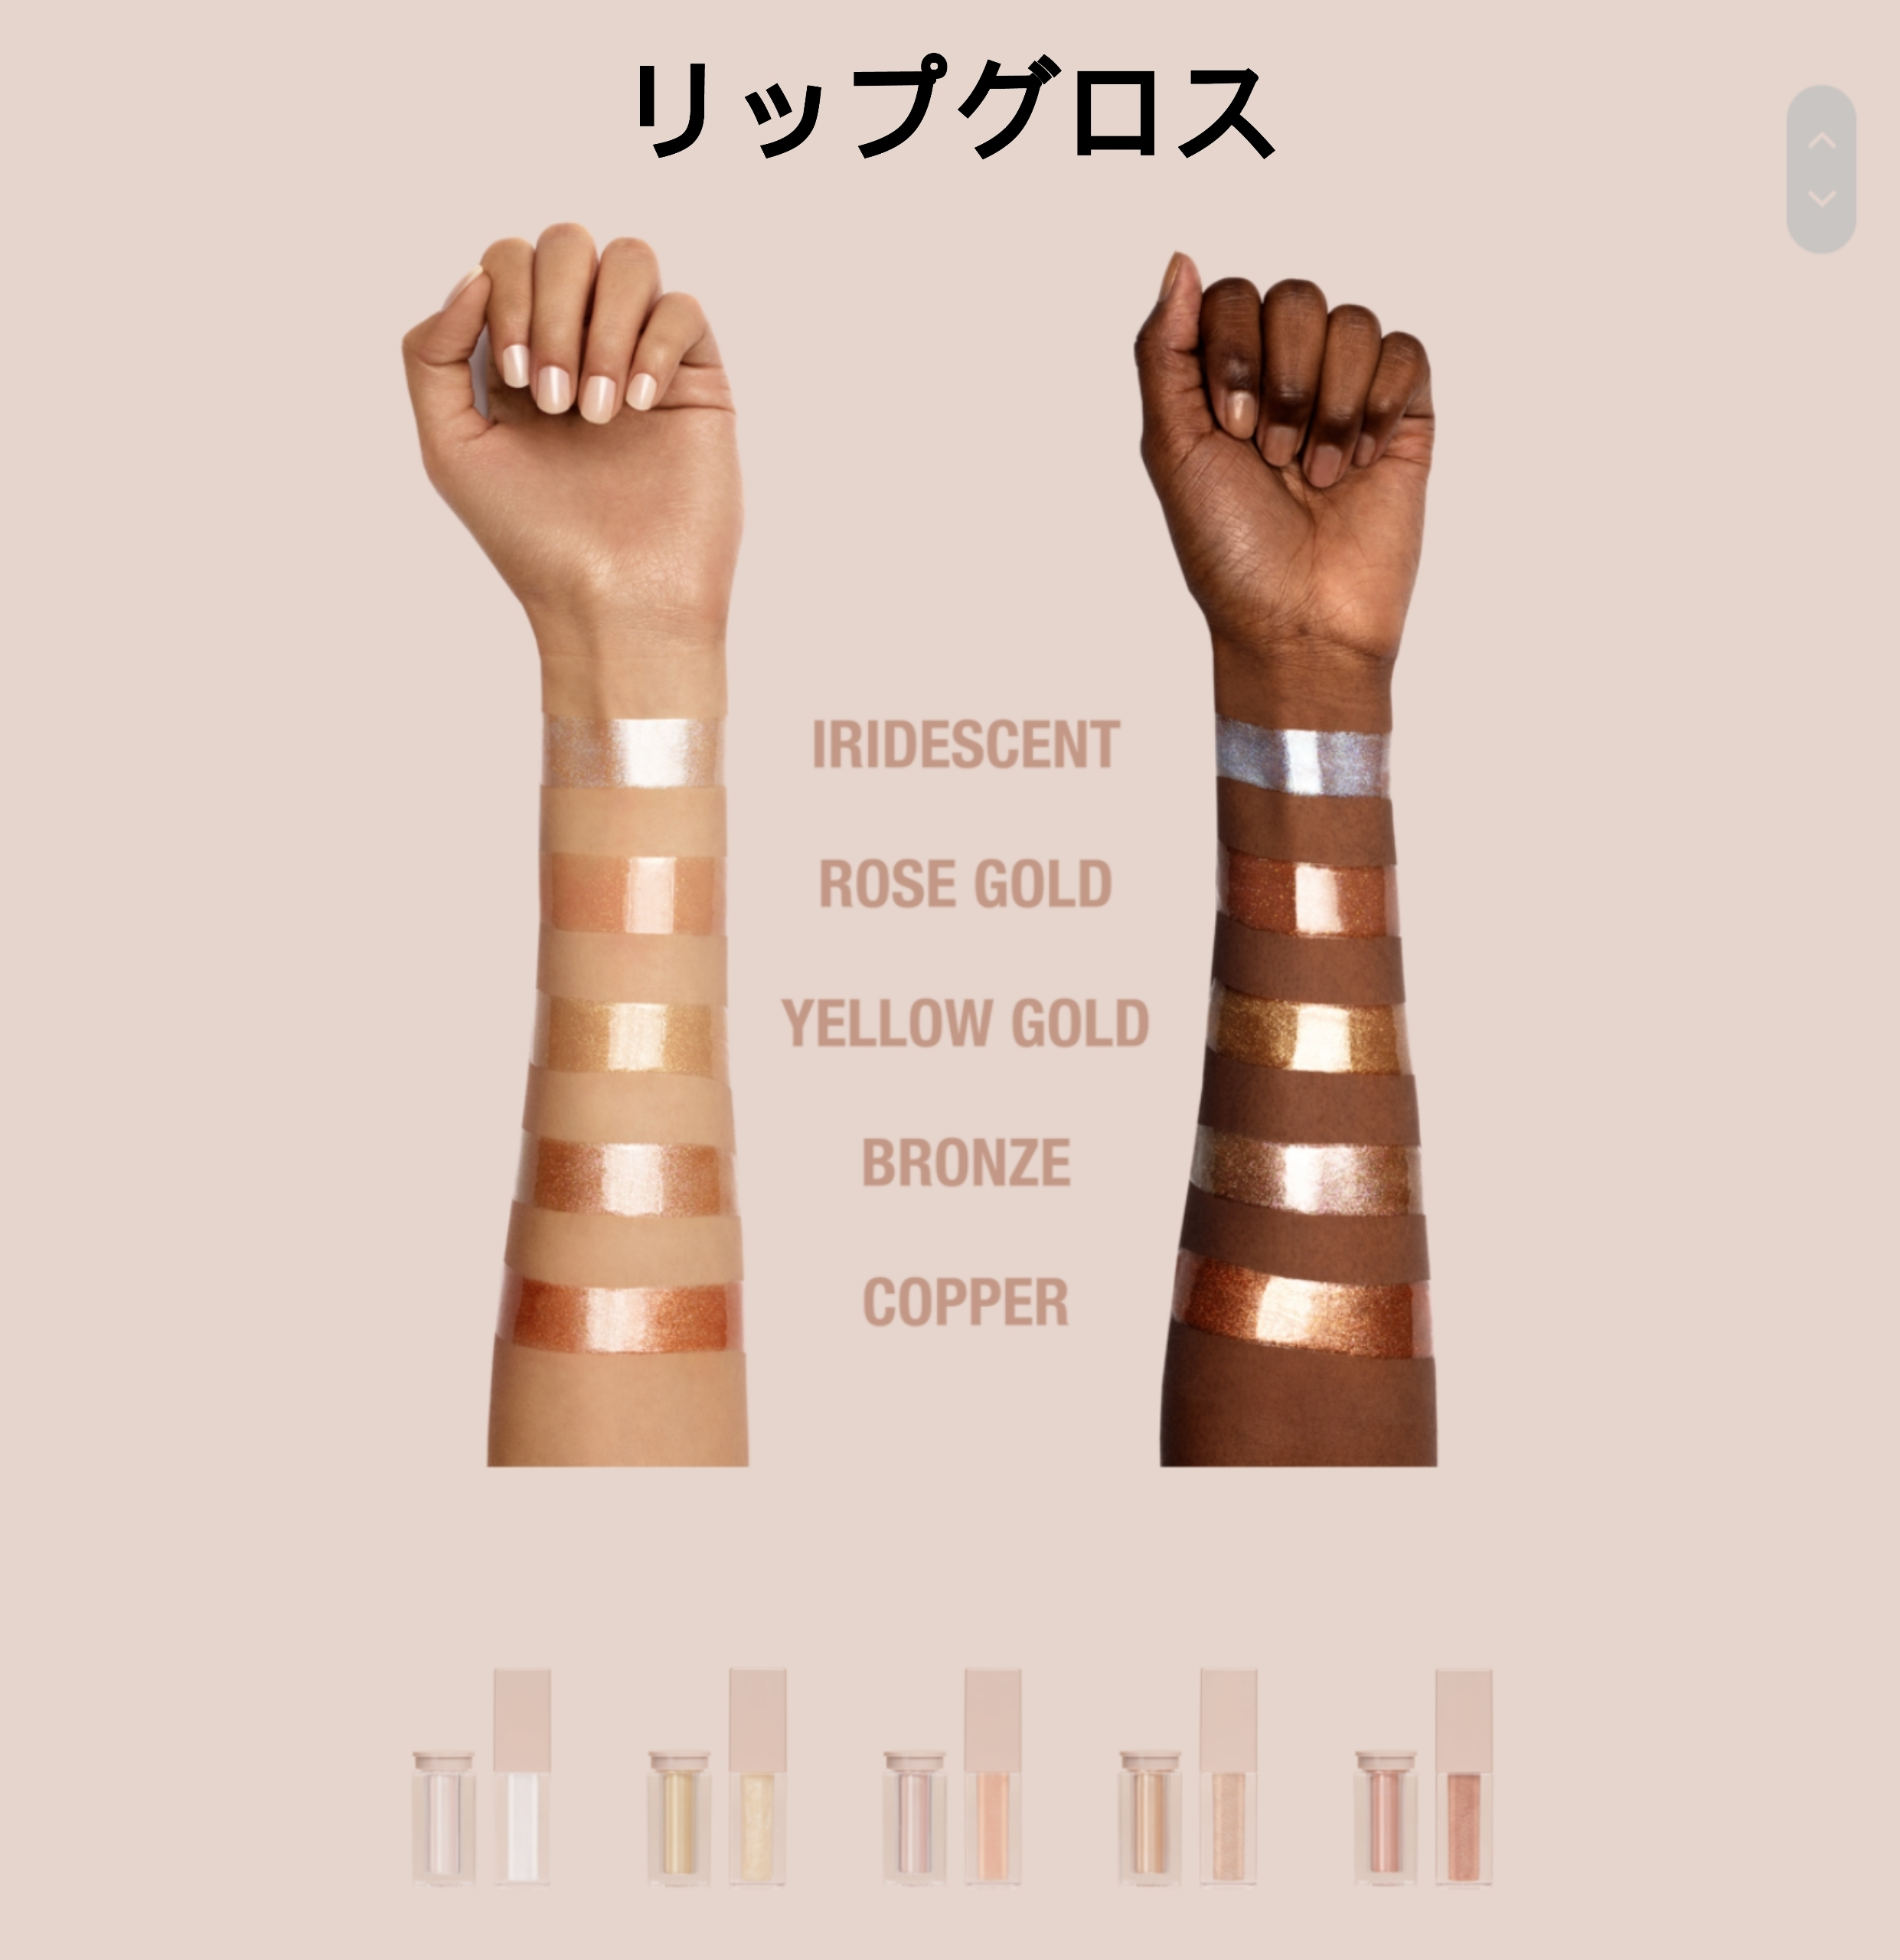 KKW BEAUTY☆ULTRALIGHT BEANS DUO ハイライターとリップグロス